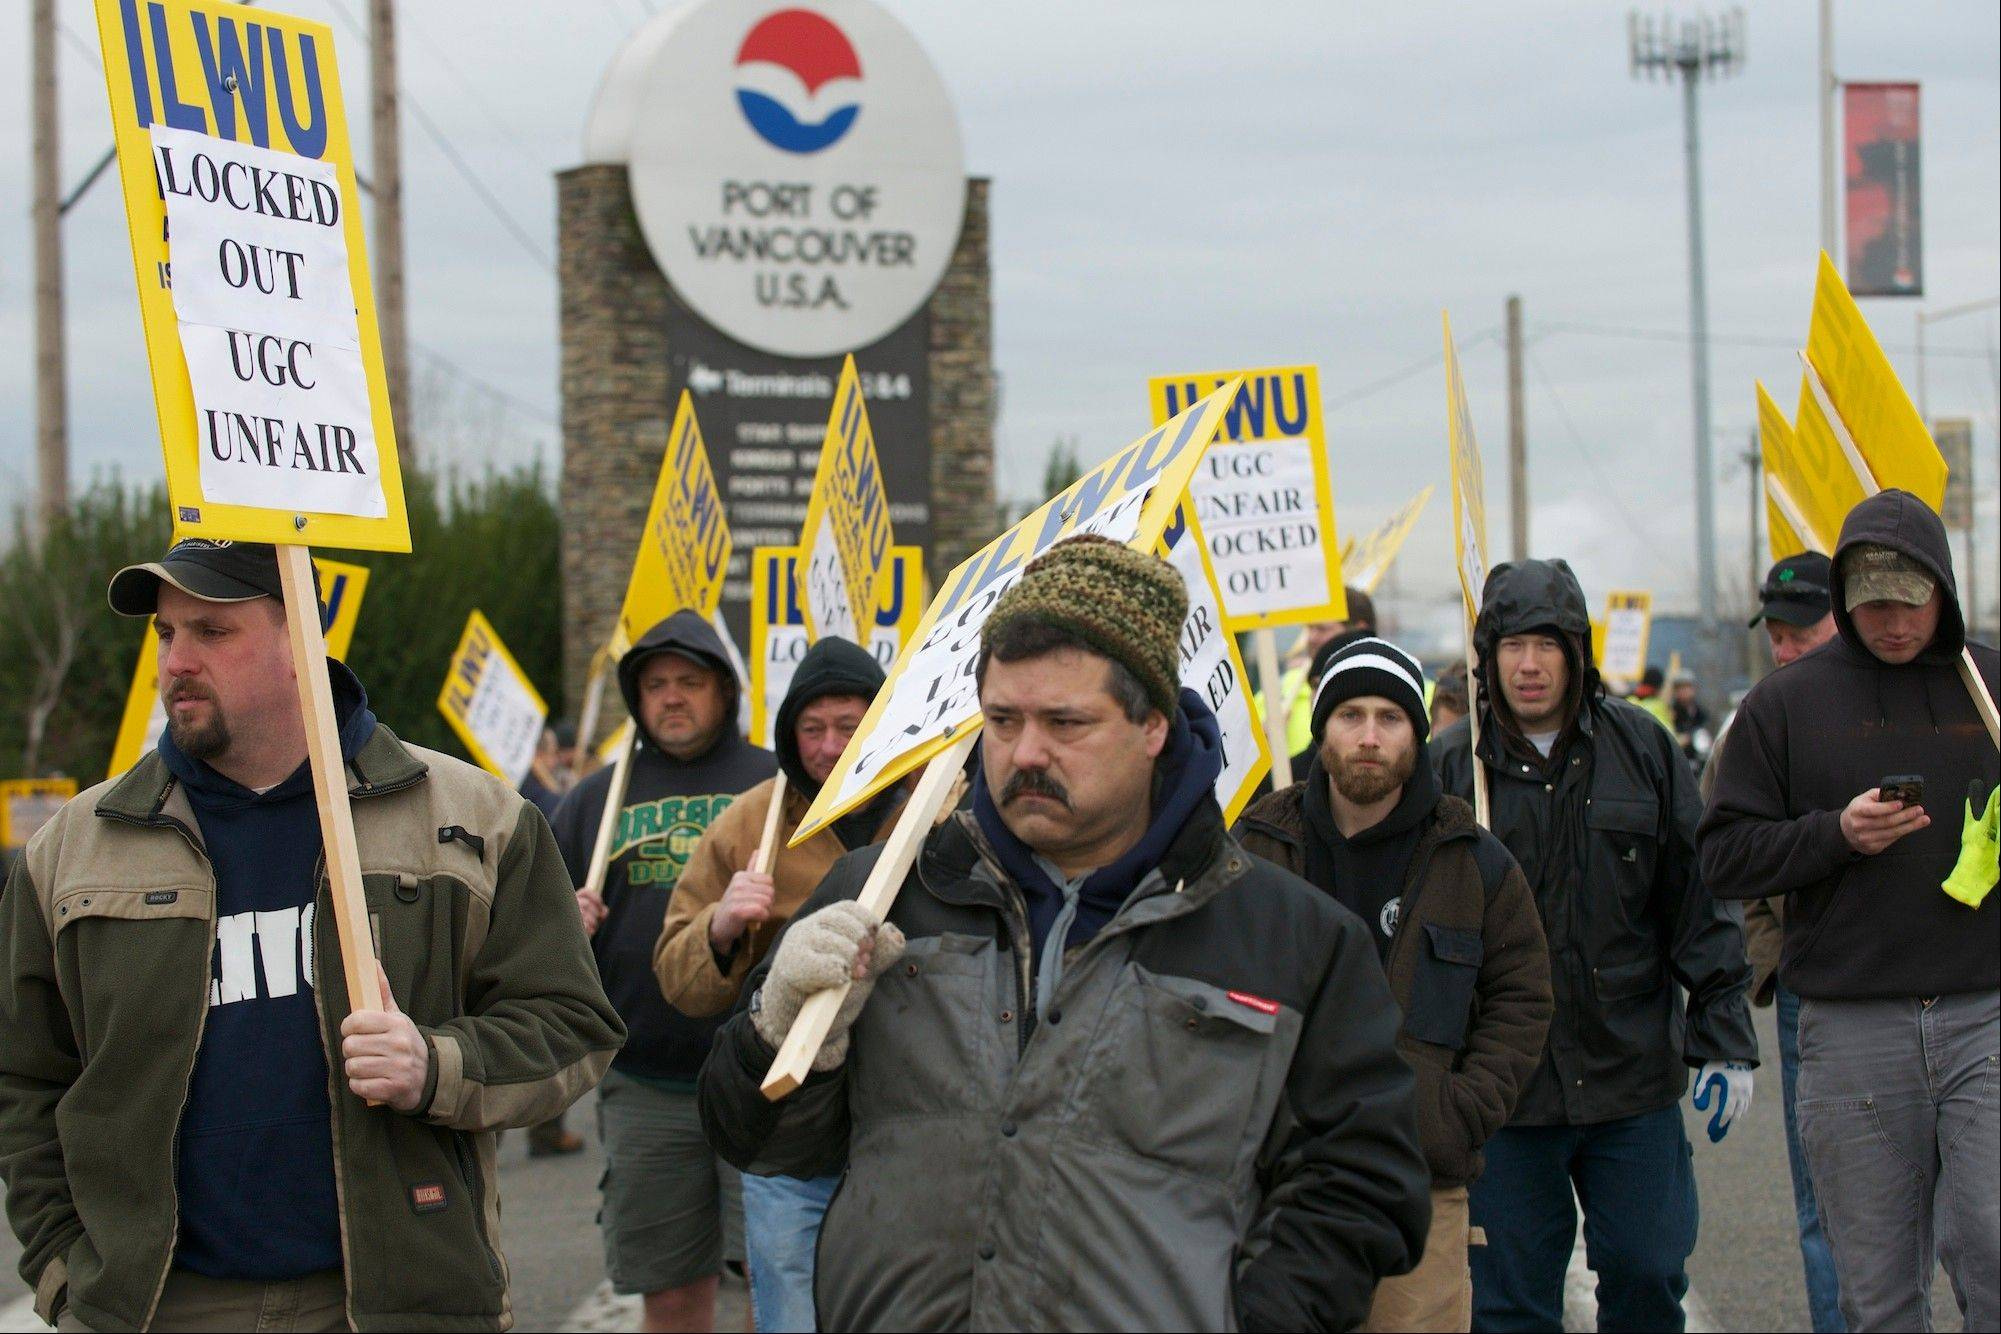 About 50 workers picket Wednesday outside the main entrance to the Port of Vancouver, in Vancouver, Wash.